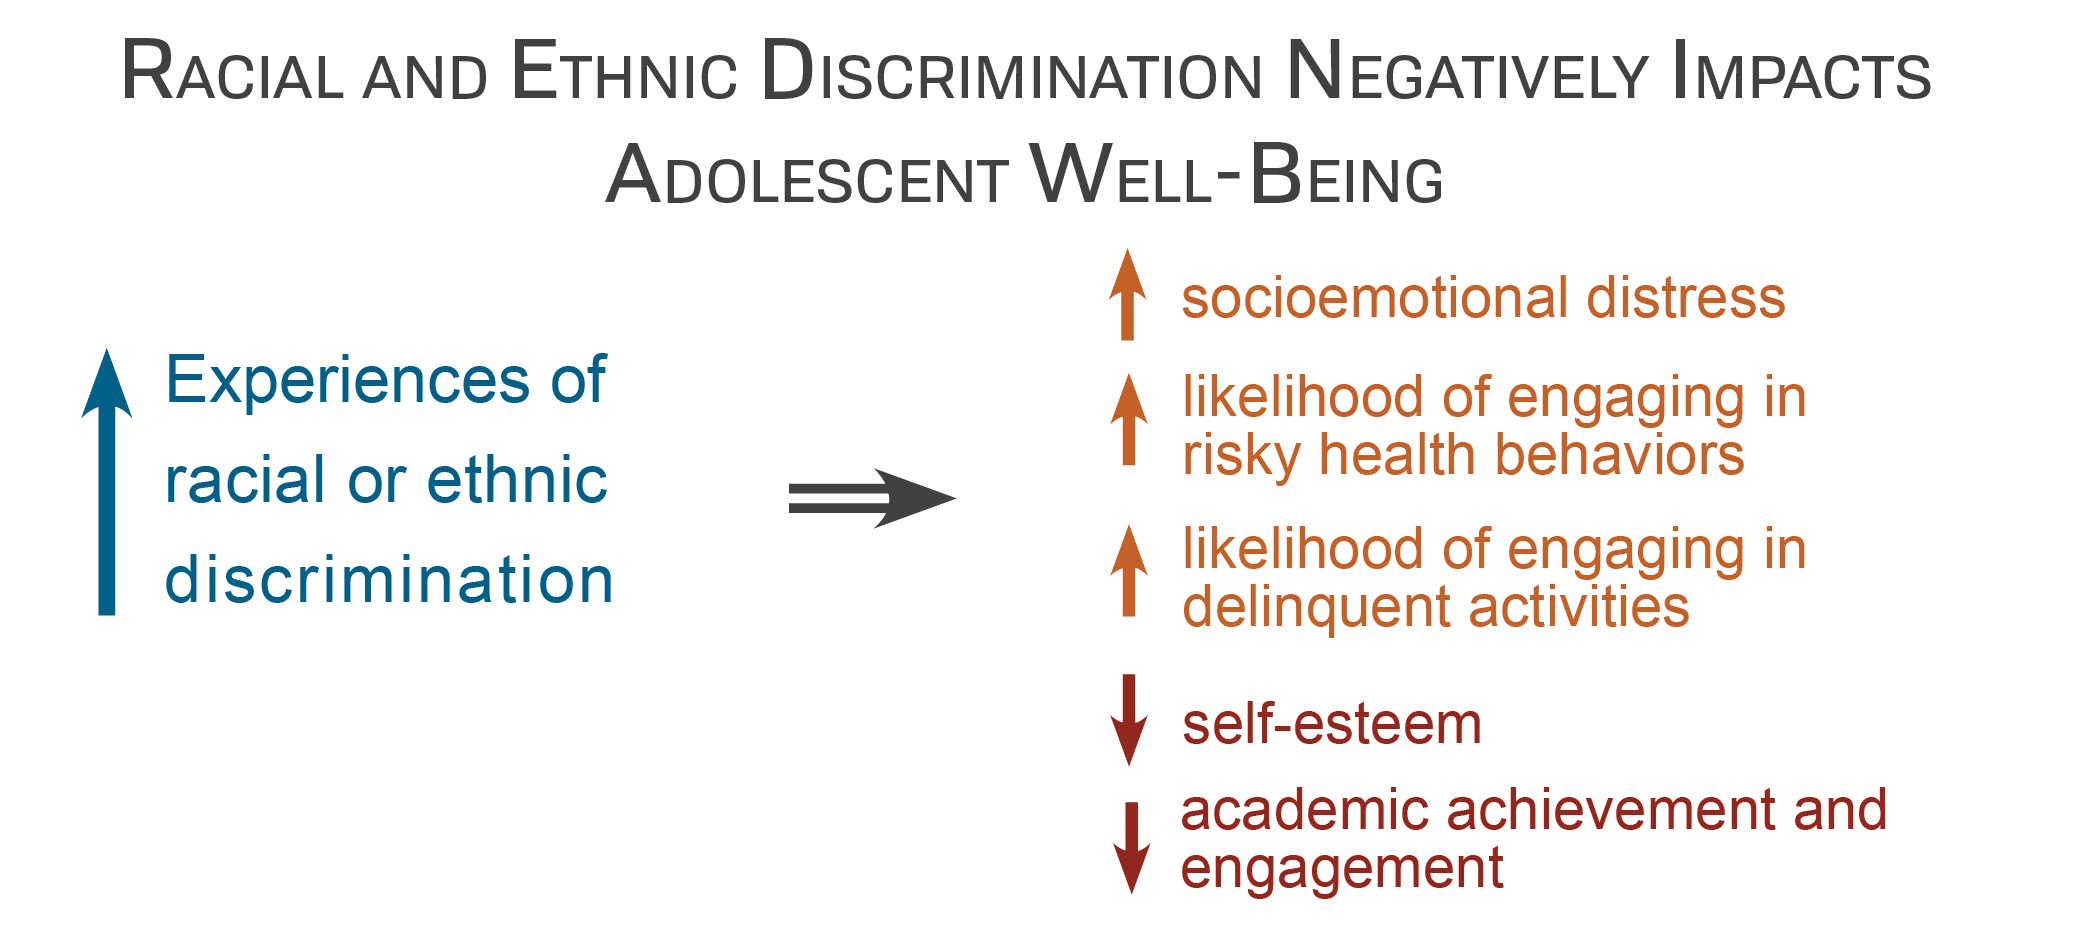 New Research Brief on Racial and Ethnic Discrimination on Adolescents' Well-Being by Aprile D. Benner.